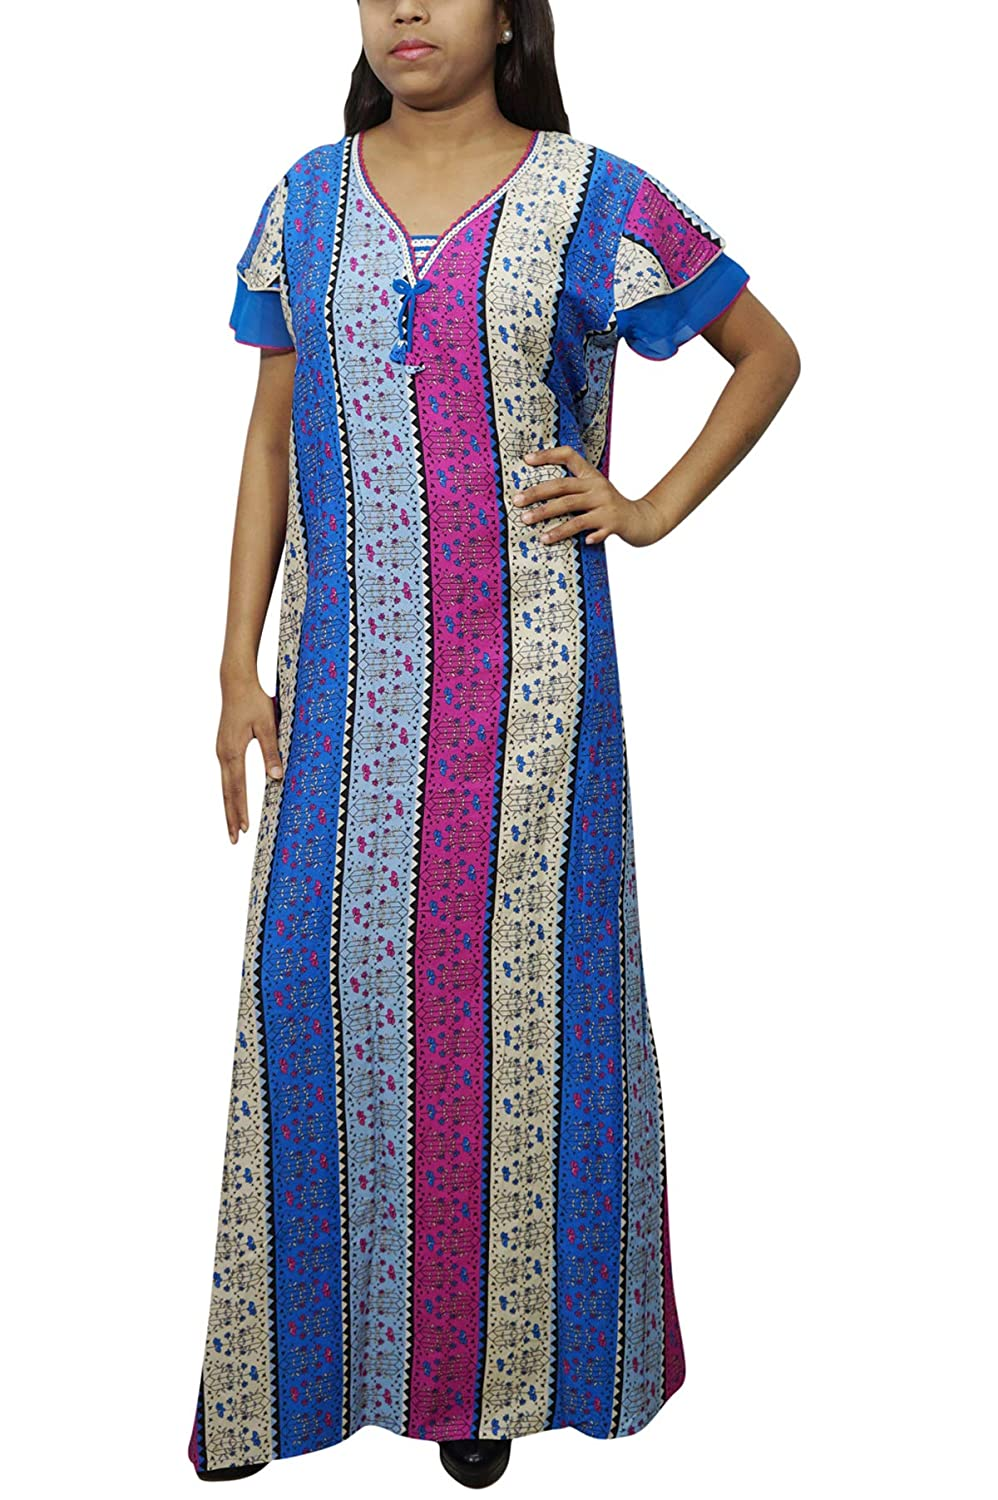 Indiatrendzs Womens Nightgown Printed Strachable Hosiery Maxi Evening Wear  Pink Blue  Amazon.in  Clothing   Accessories 08cd30440